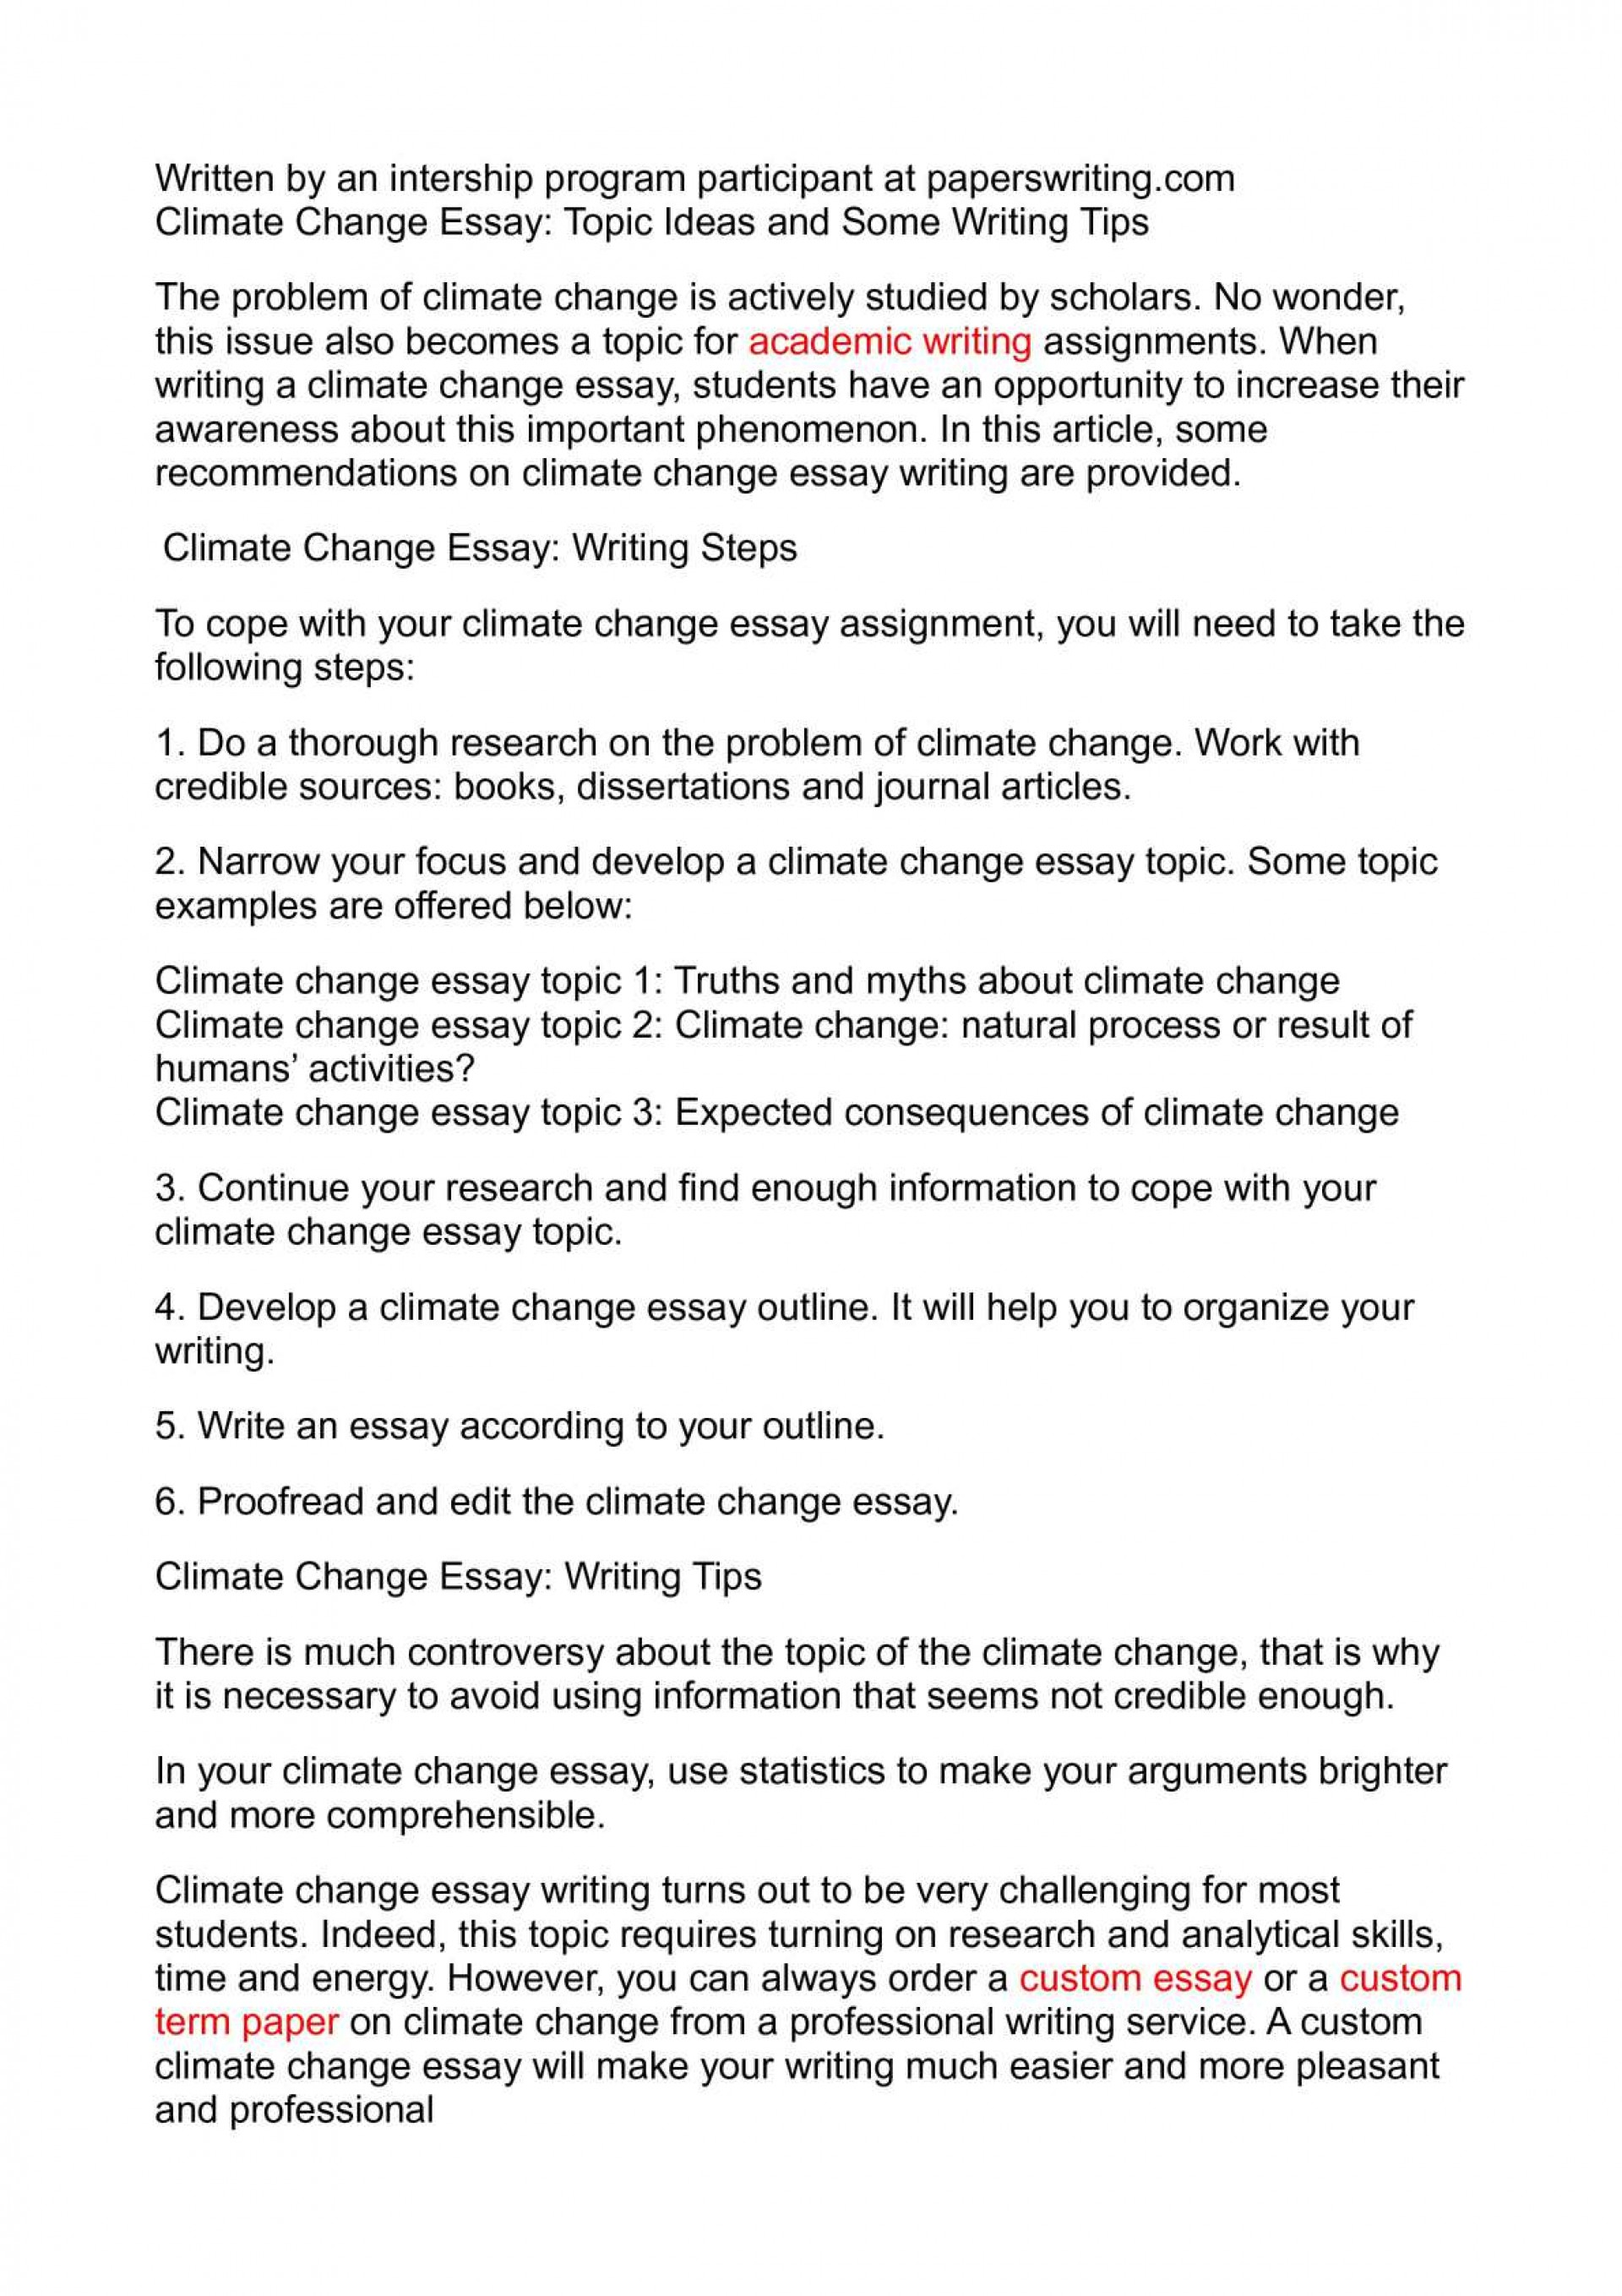 002 Research Paper Climate Change Topics Essay Uncategorized Global Warming Topic Ways To St Oracleboss Awesome 1920